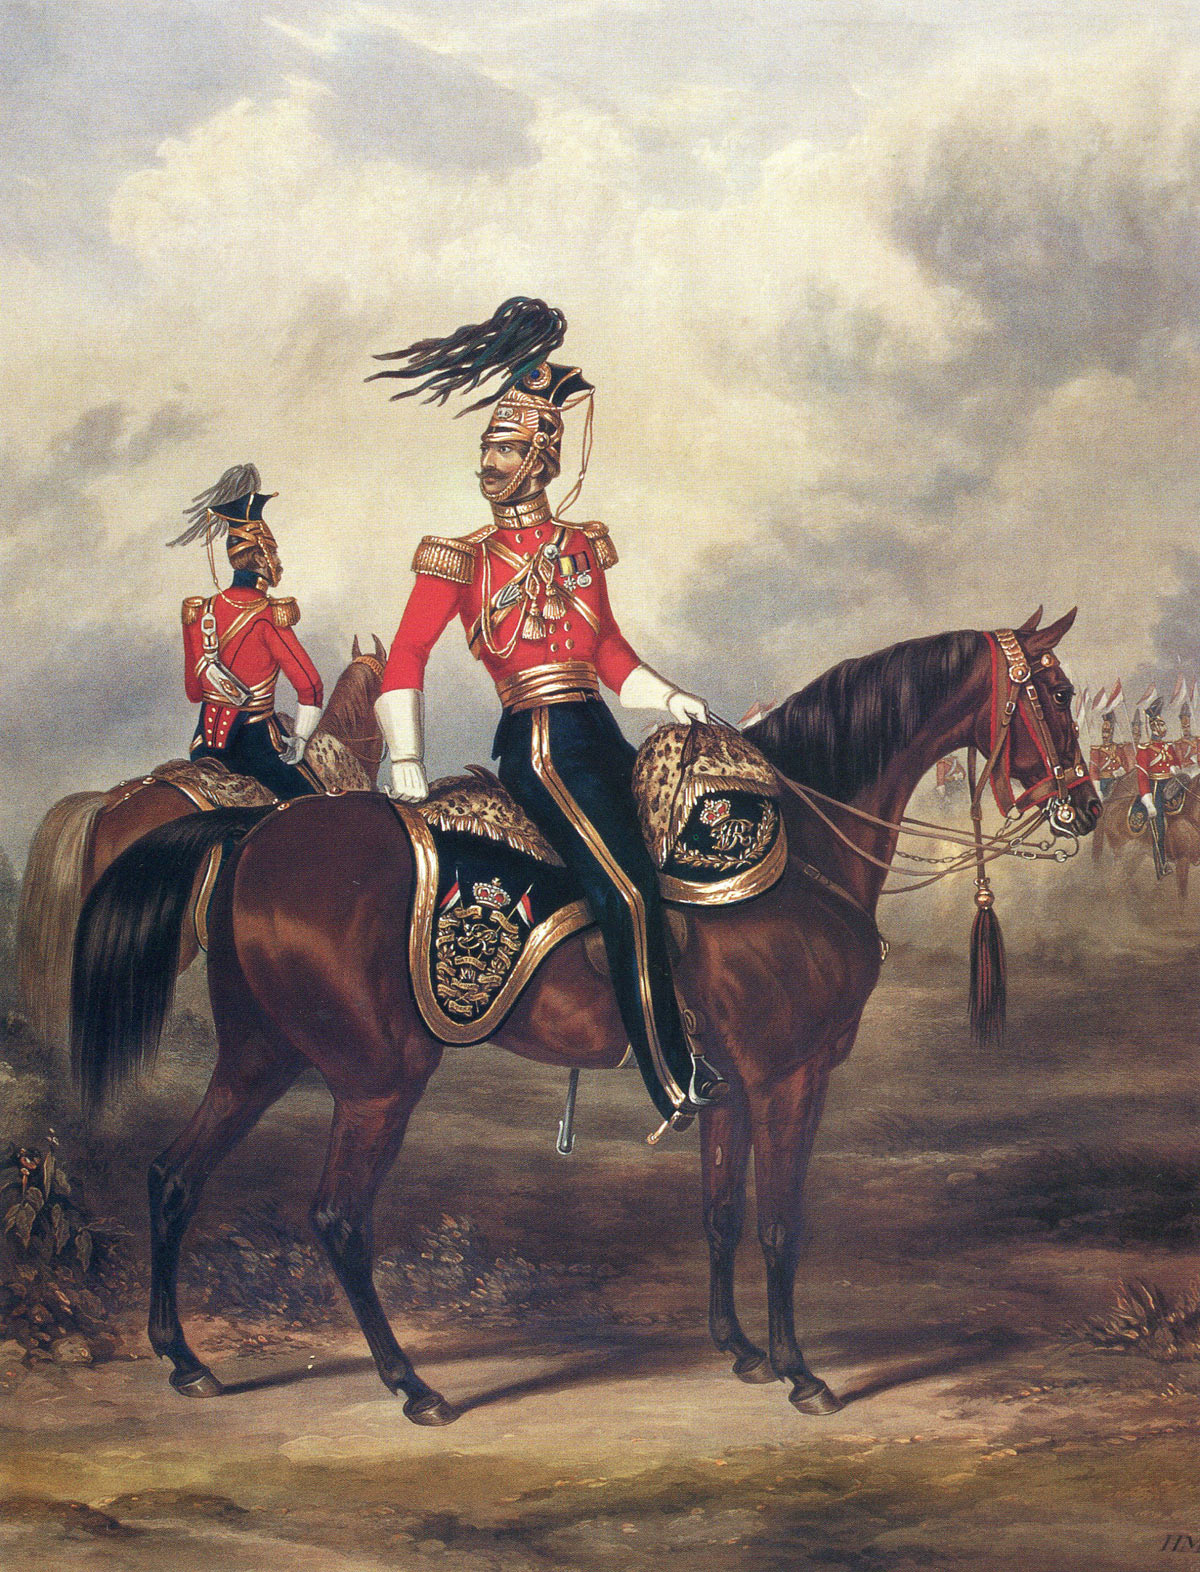 Major John Rowland Smyth, commanding officer of the 16th Lancers at the Battle of Aliwal on 28th January 1846 in the First Sikh War: print by Ackermann